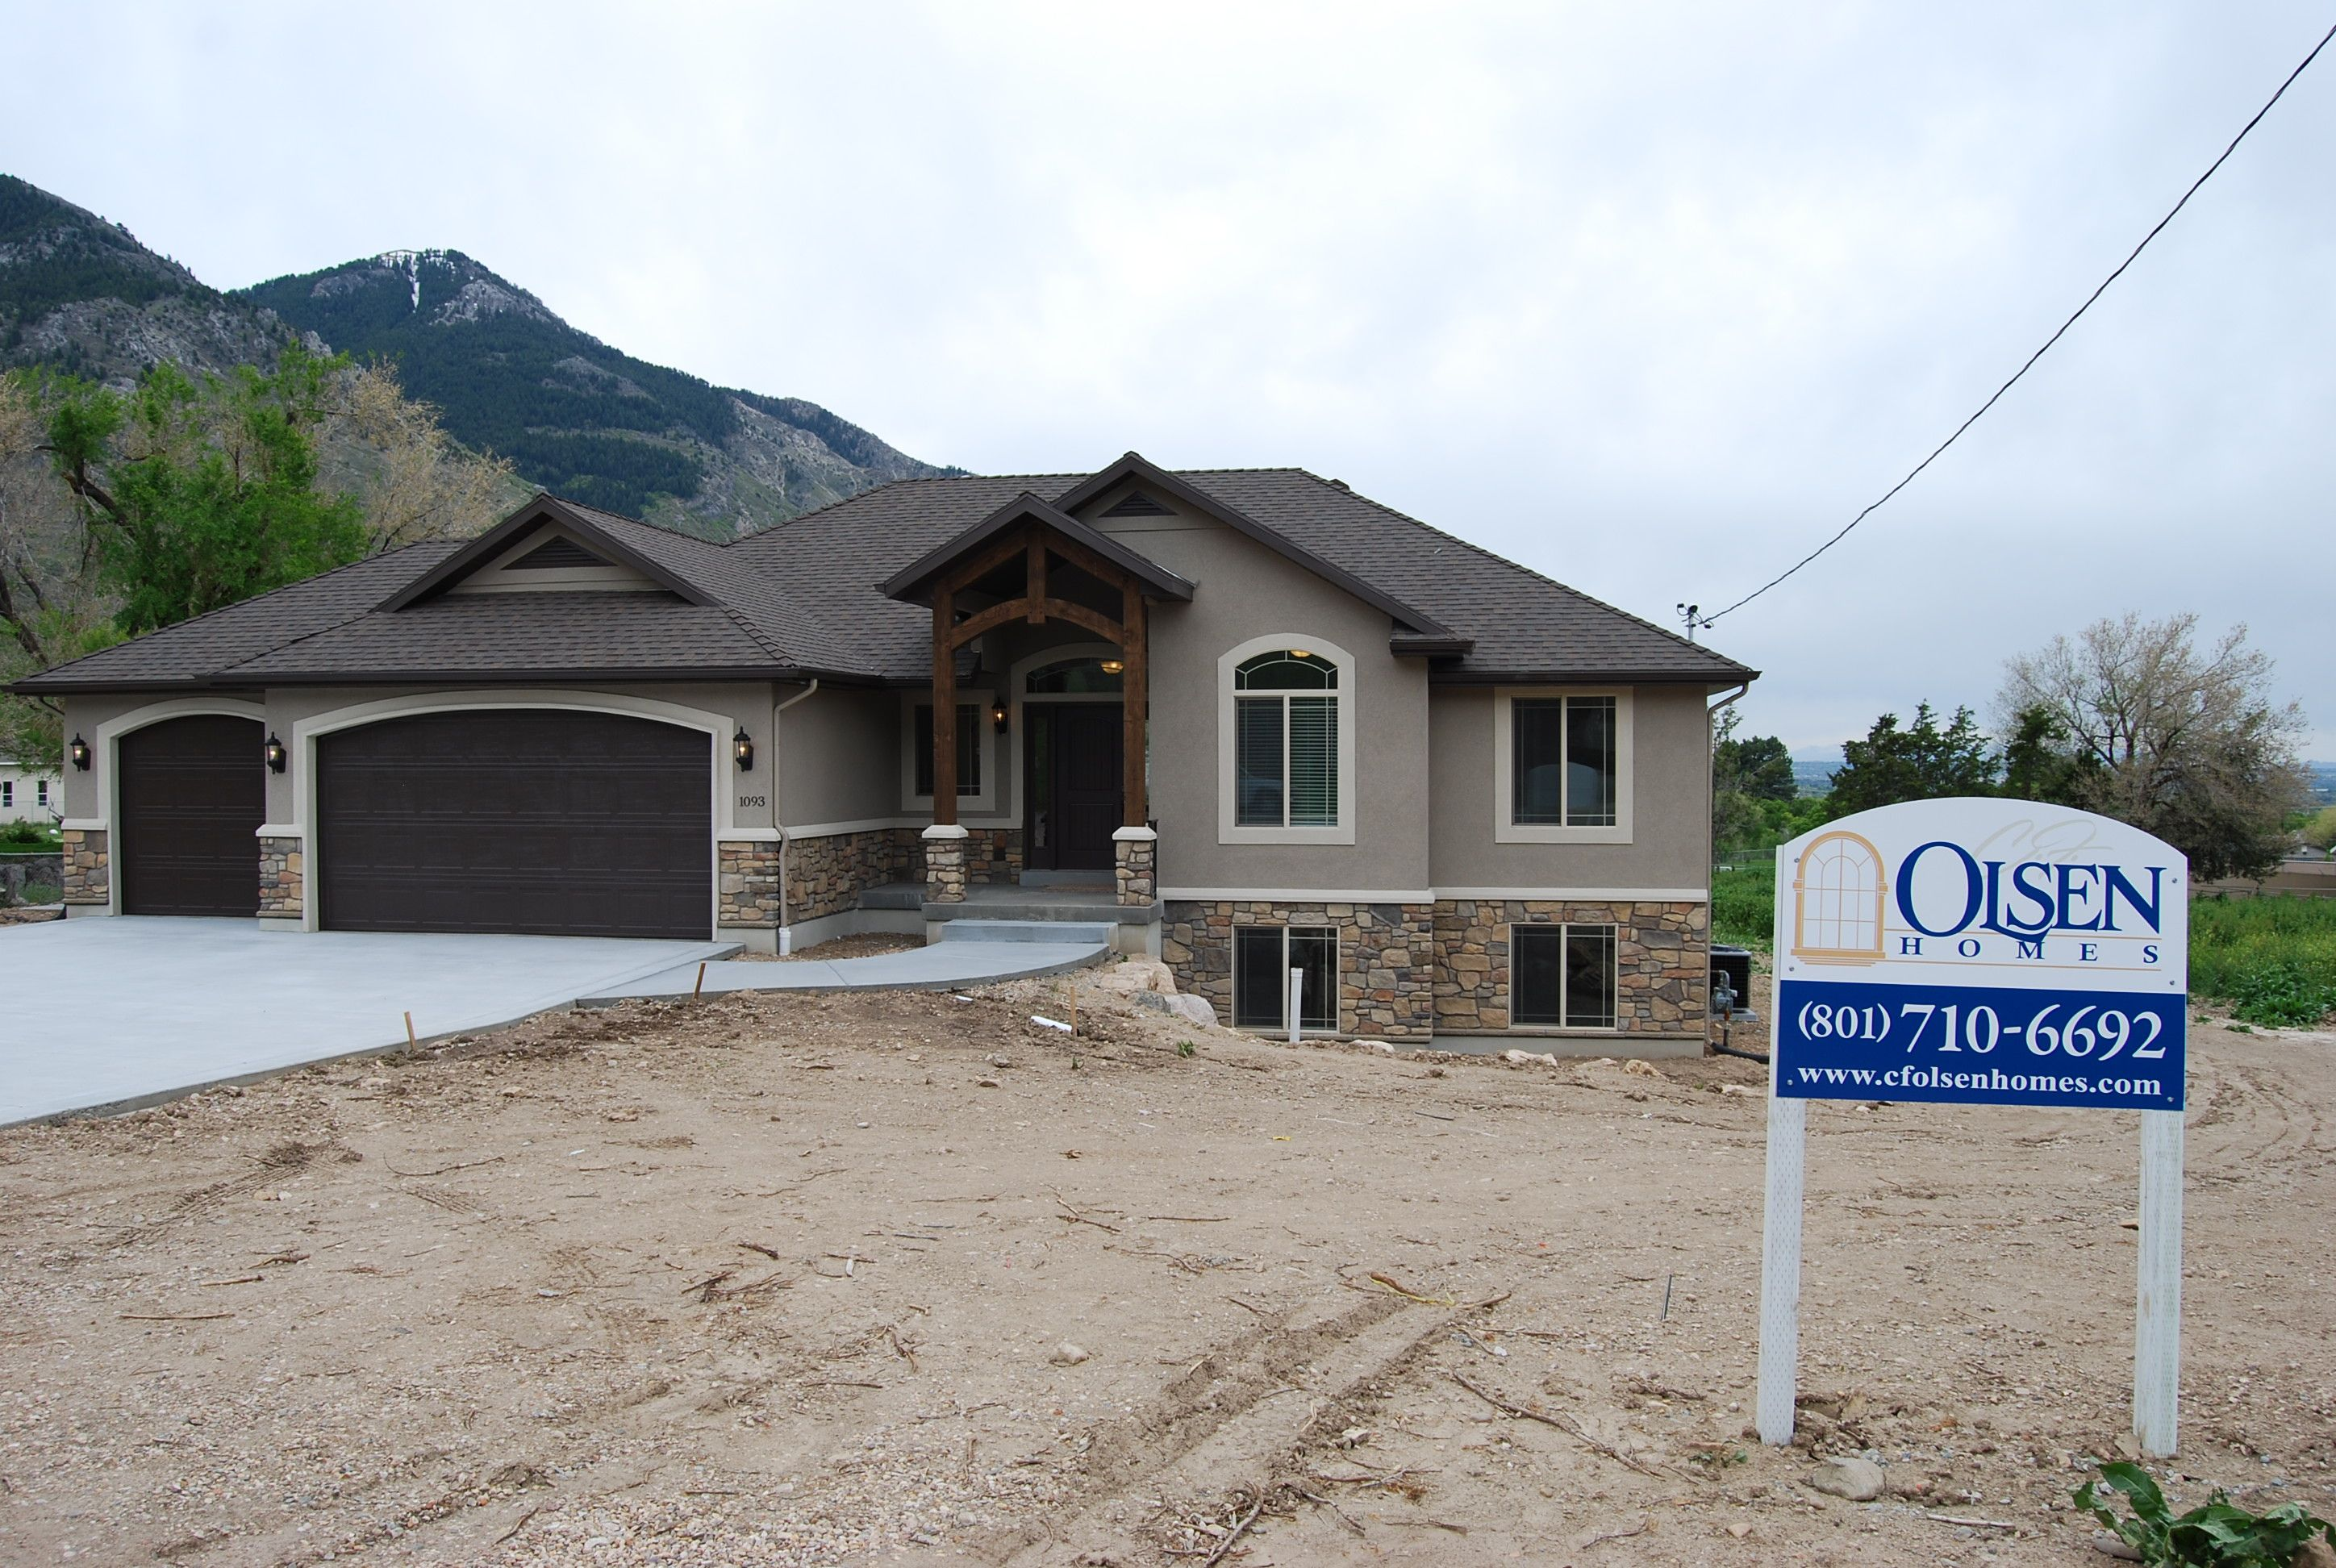 Look At CF Olsen Homes Gallery Today For Pictures Of